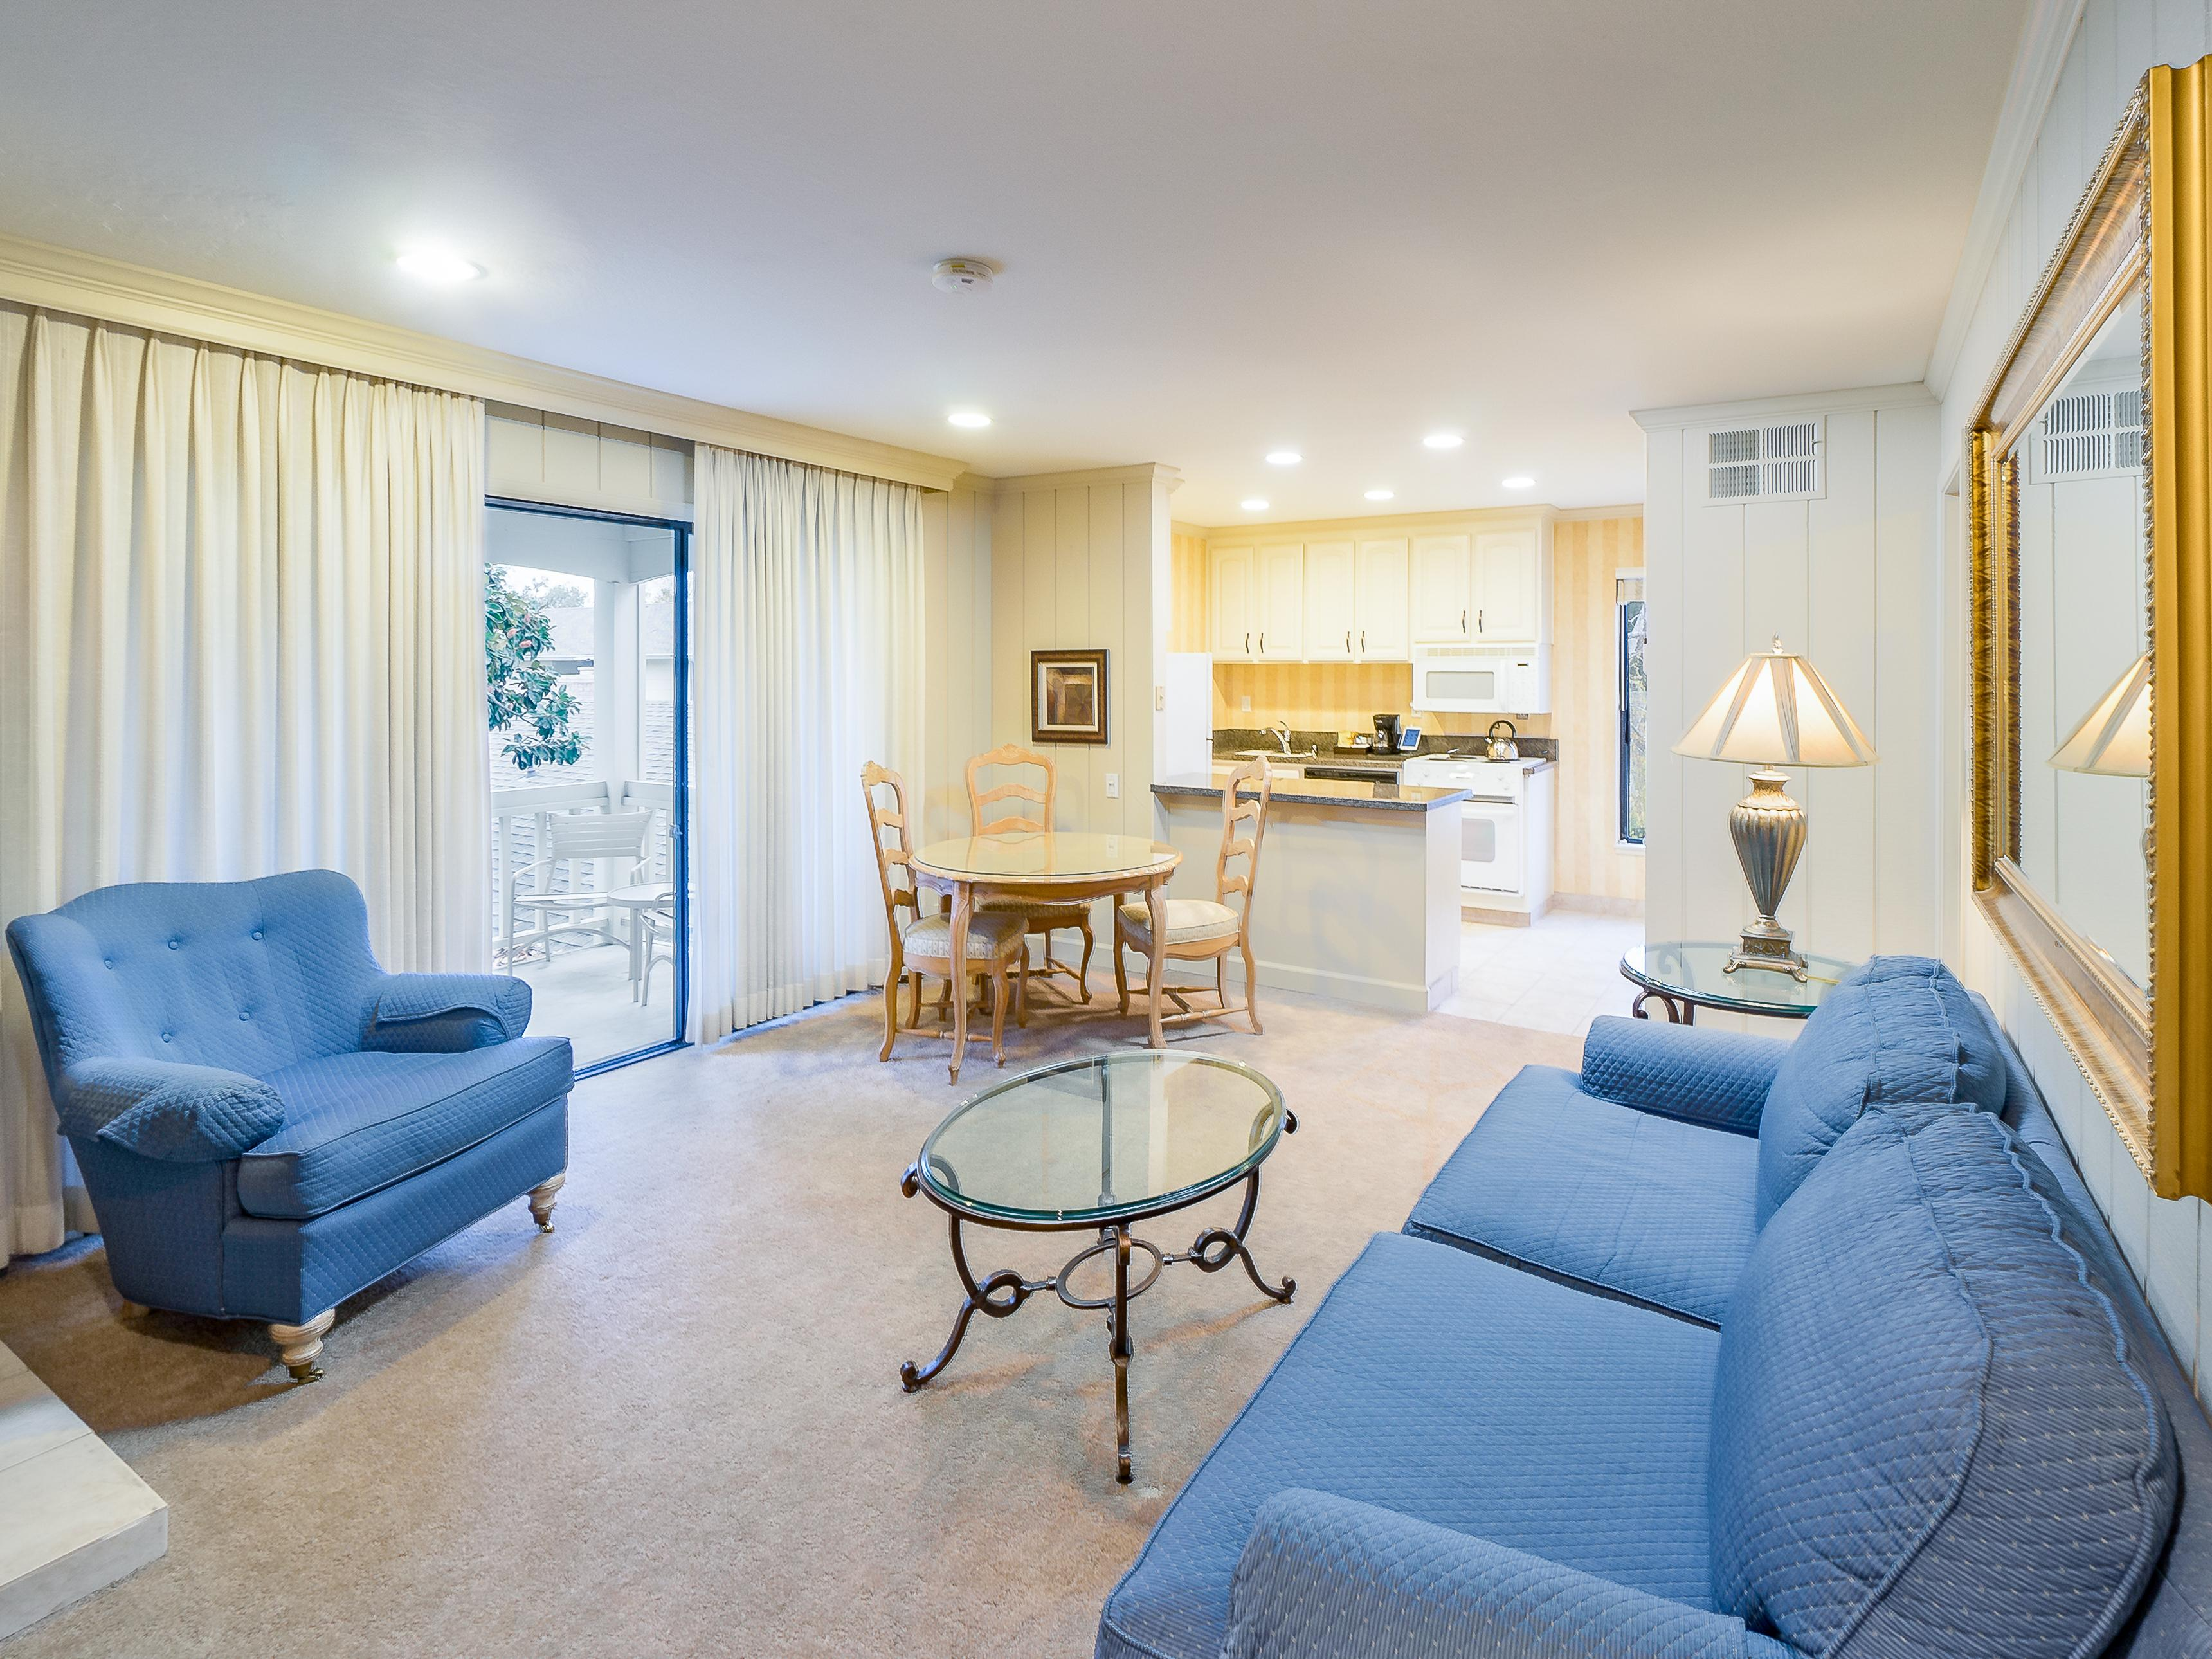 Welcome to Napa! Relax in the open-plan living area, outfitted with comfy seating and plenty of natural light.